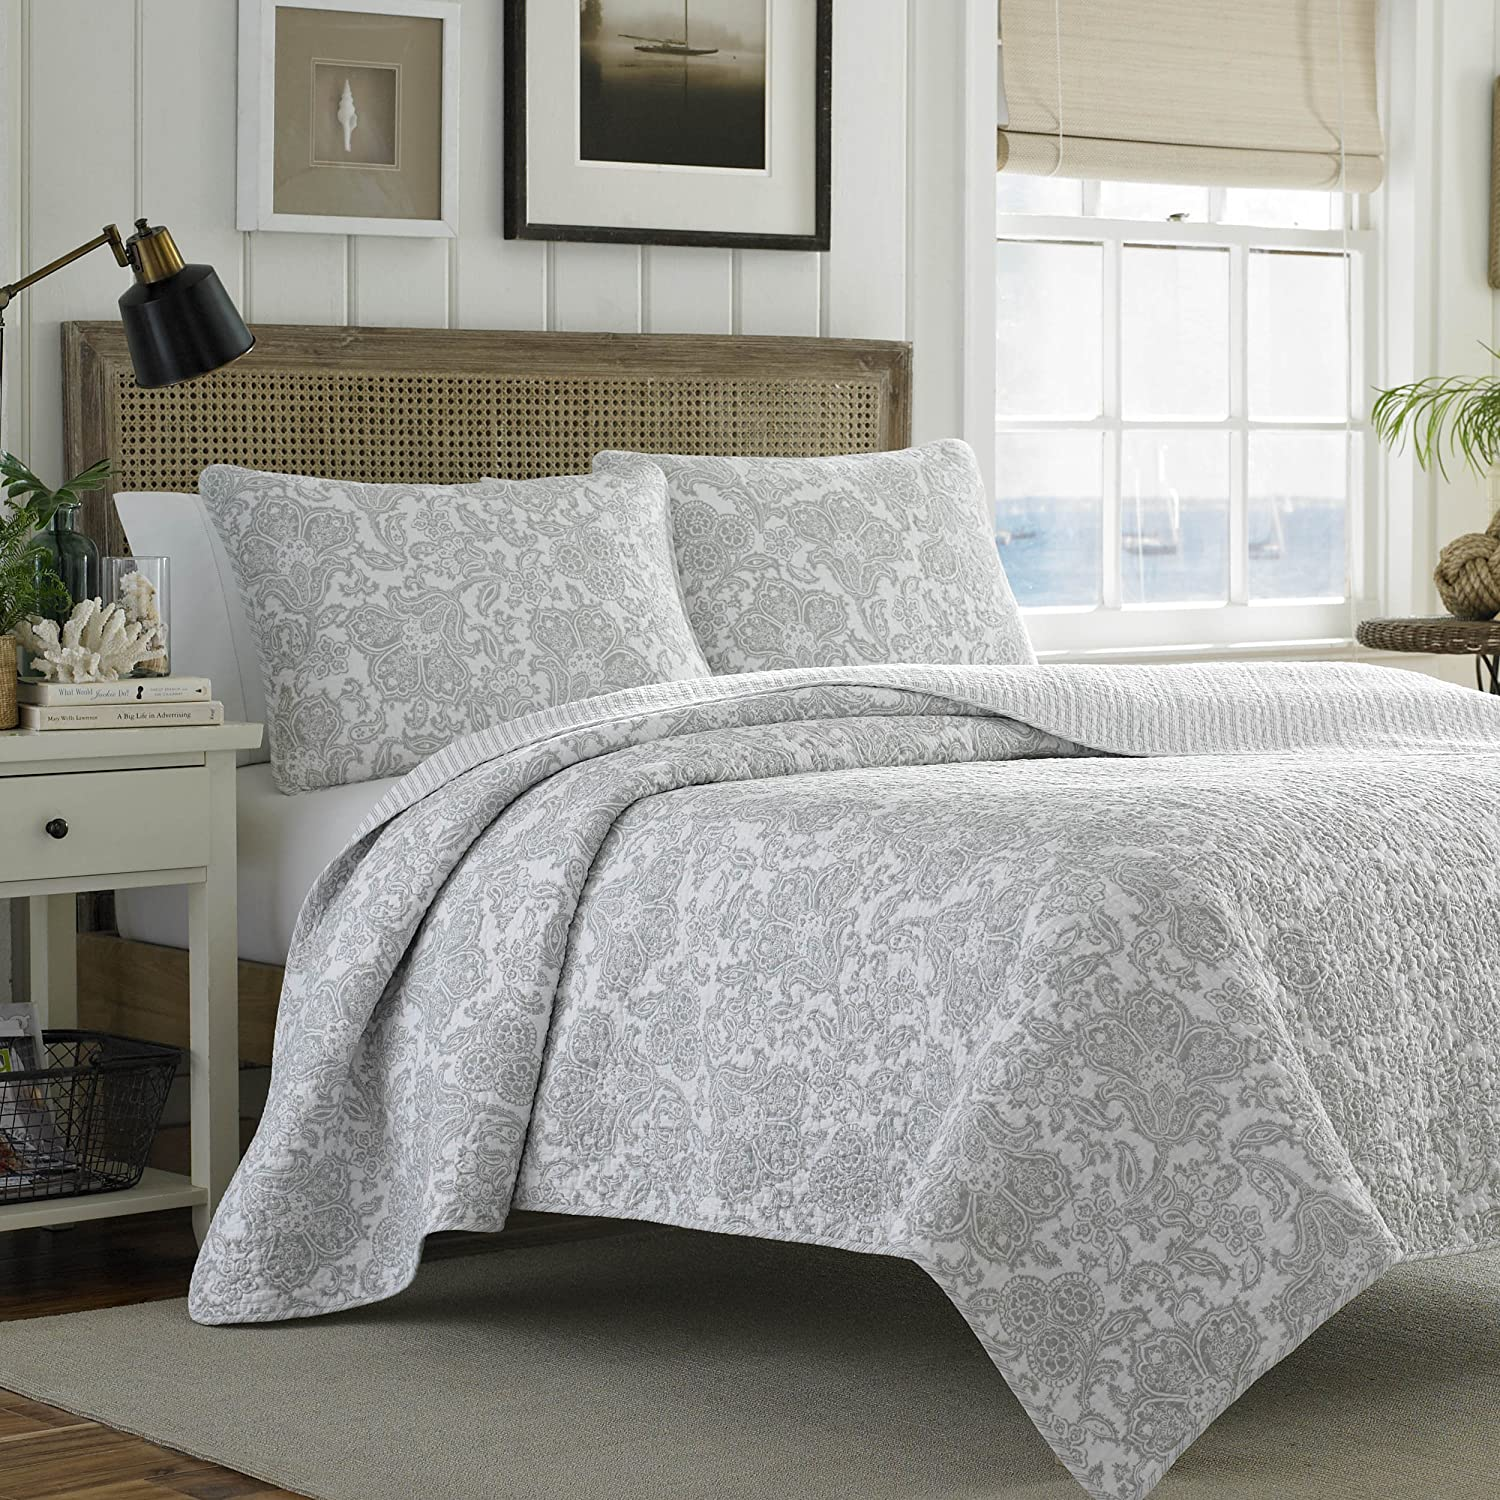 in korean item duvet cotton quilts gray cover quilt from home quilted coverlets printed pillowcase sets bedspread set paisley bedding